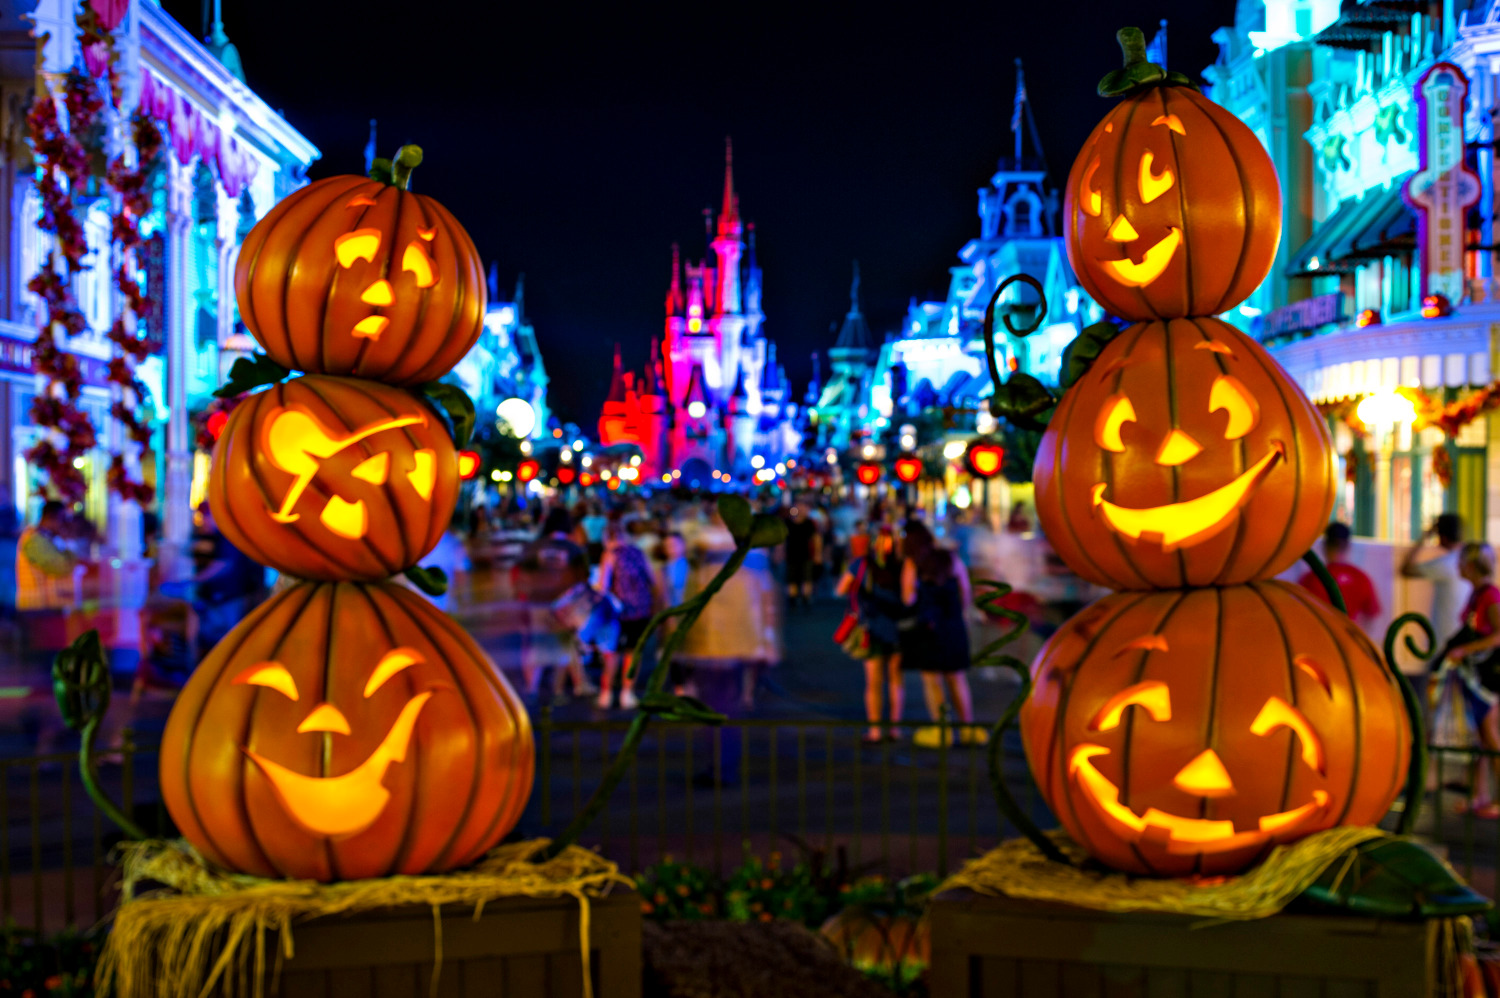 Halloween In Disney 2020 Disney cancels Mickey's Not So Scary Halloween Party in 2020